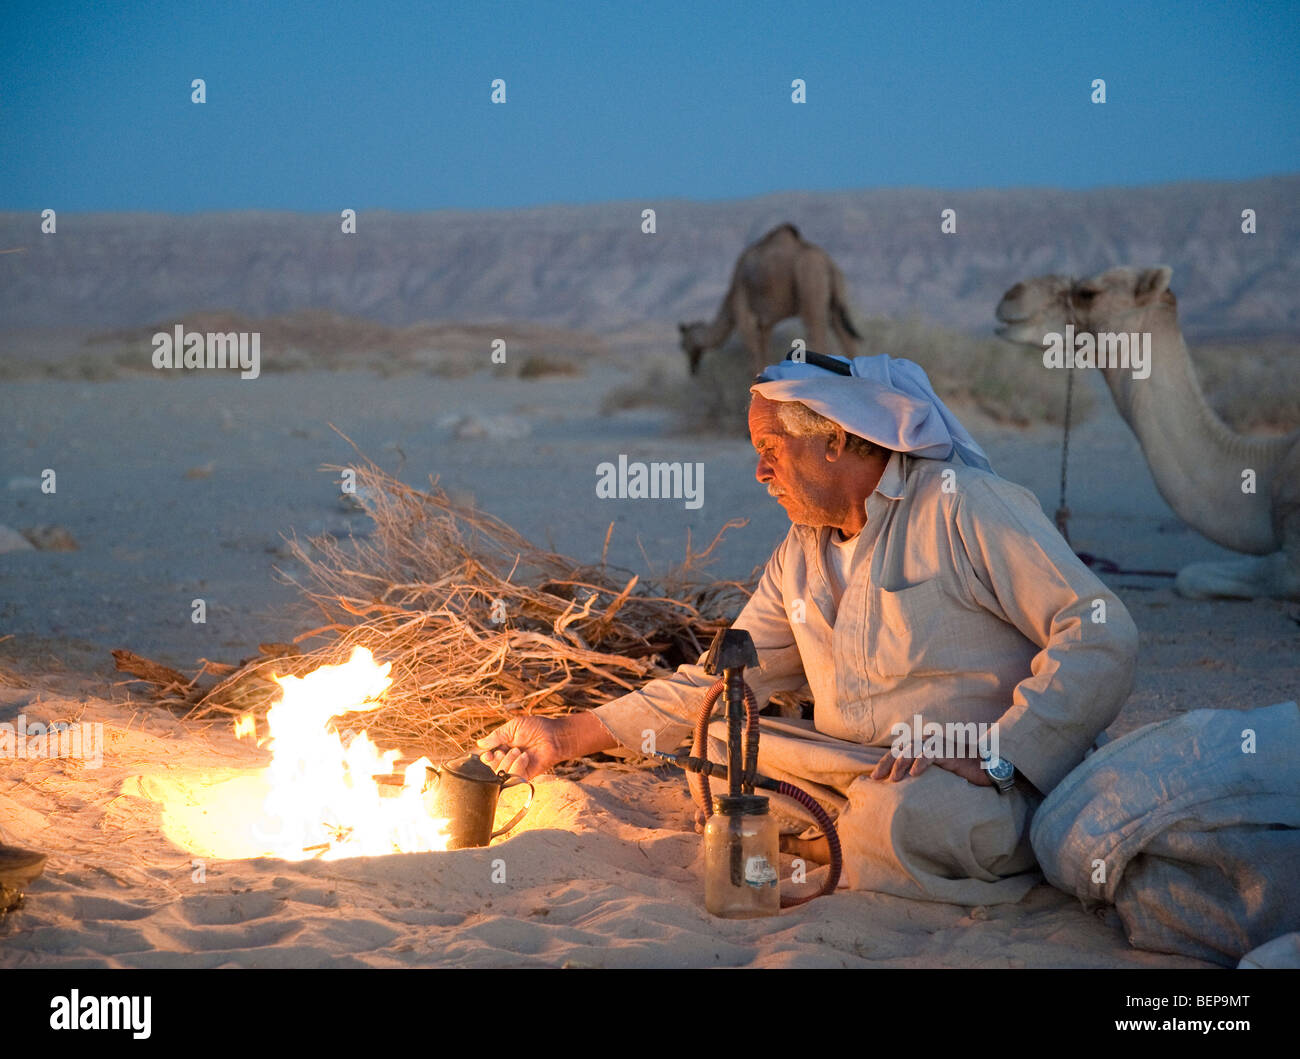 A Bedouin sets up camp for the night and makes a fire to cook on in the Sinai Desert in Egypt - Stock Image